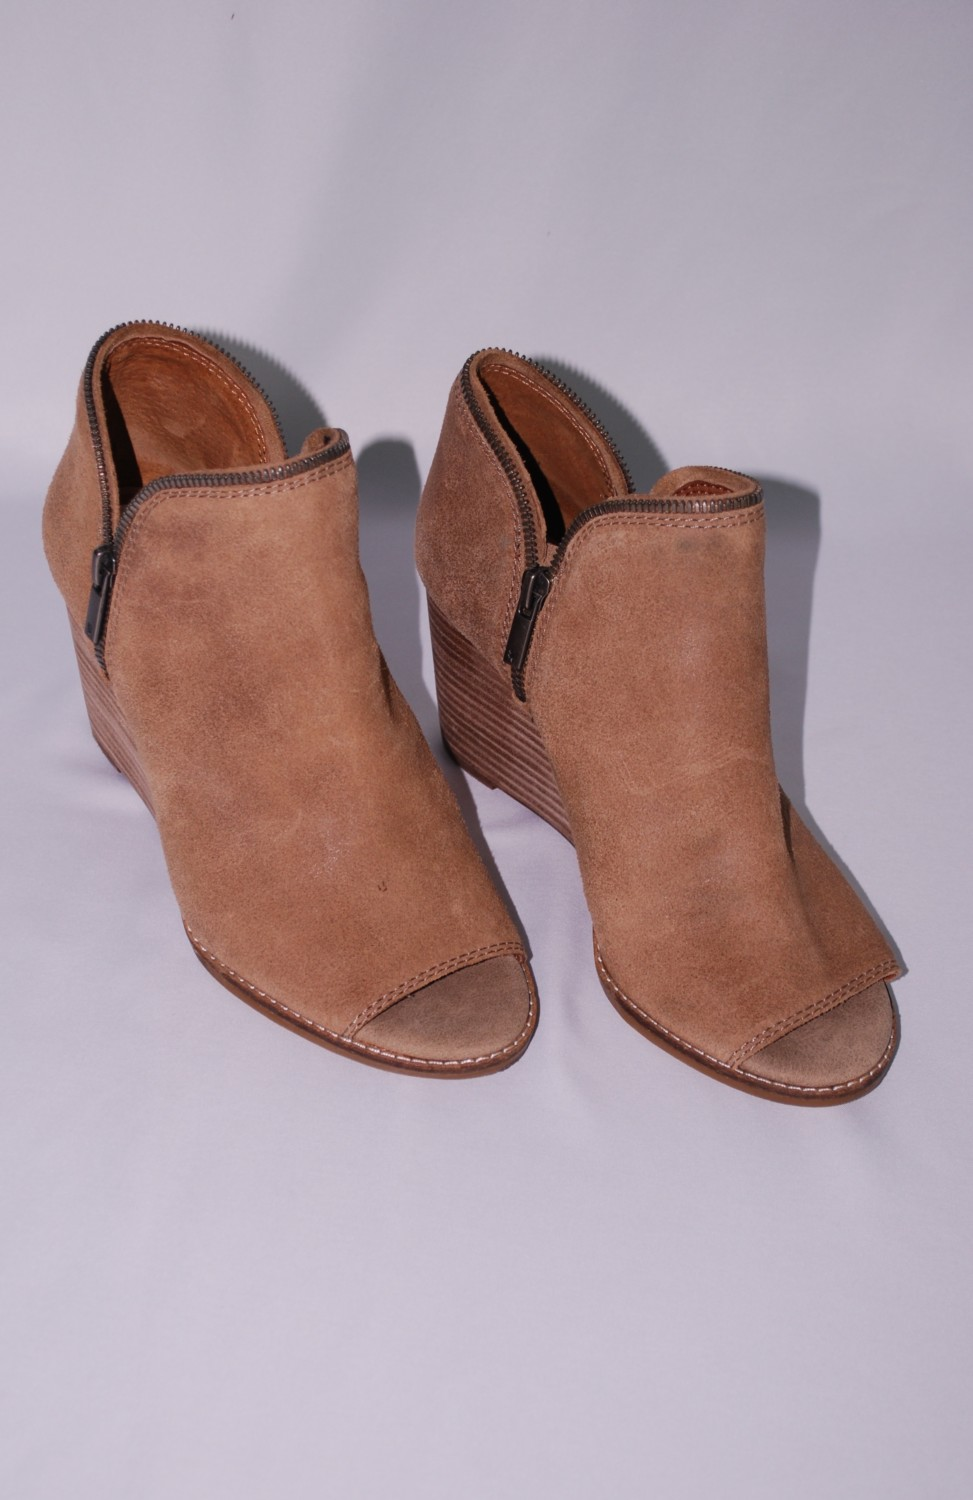 Lucky Brand Shoes – Original Retail: $139, CWS: $49